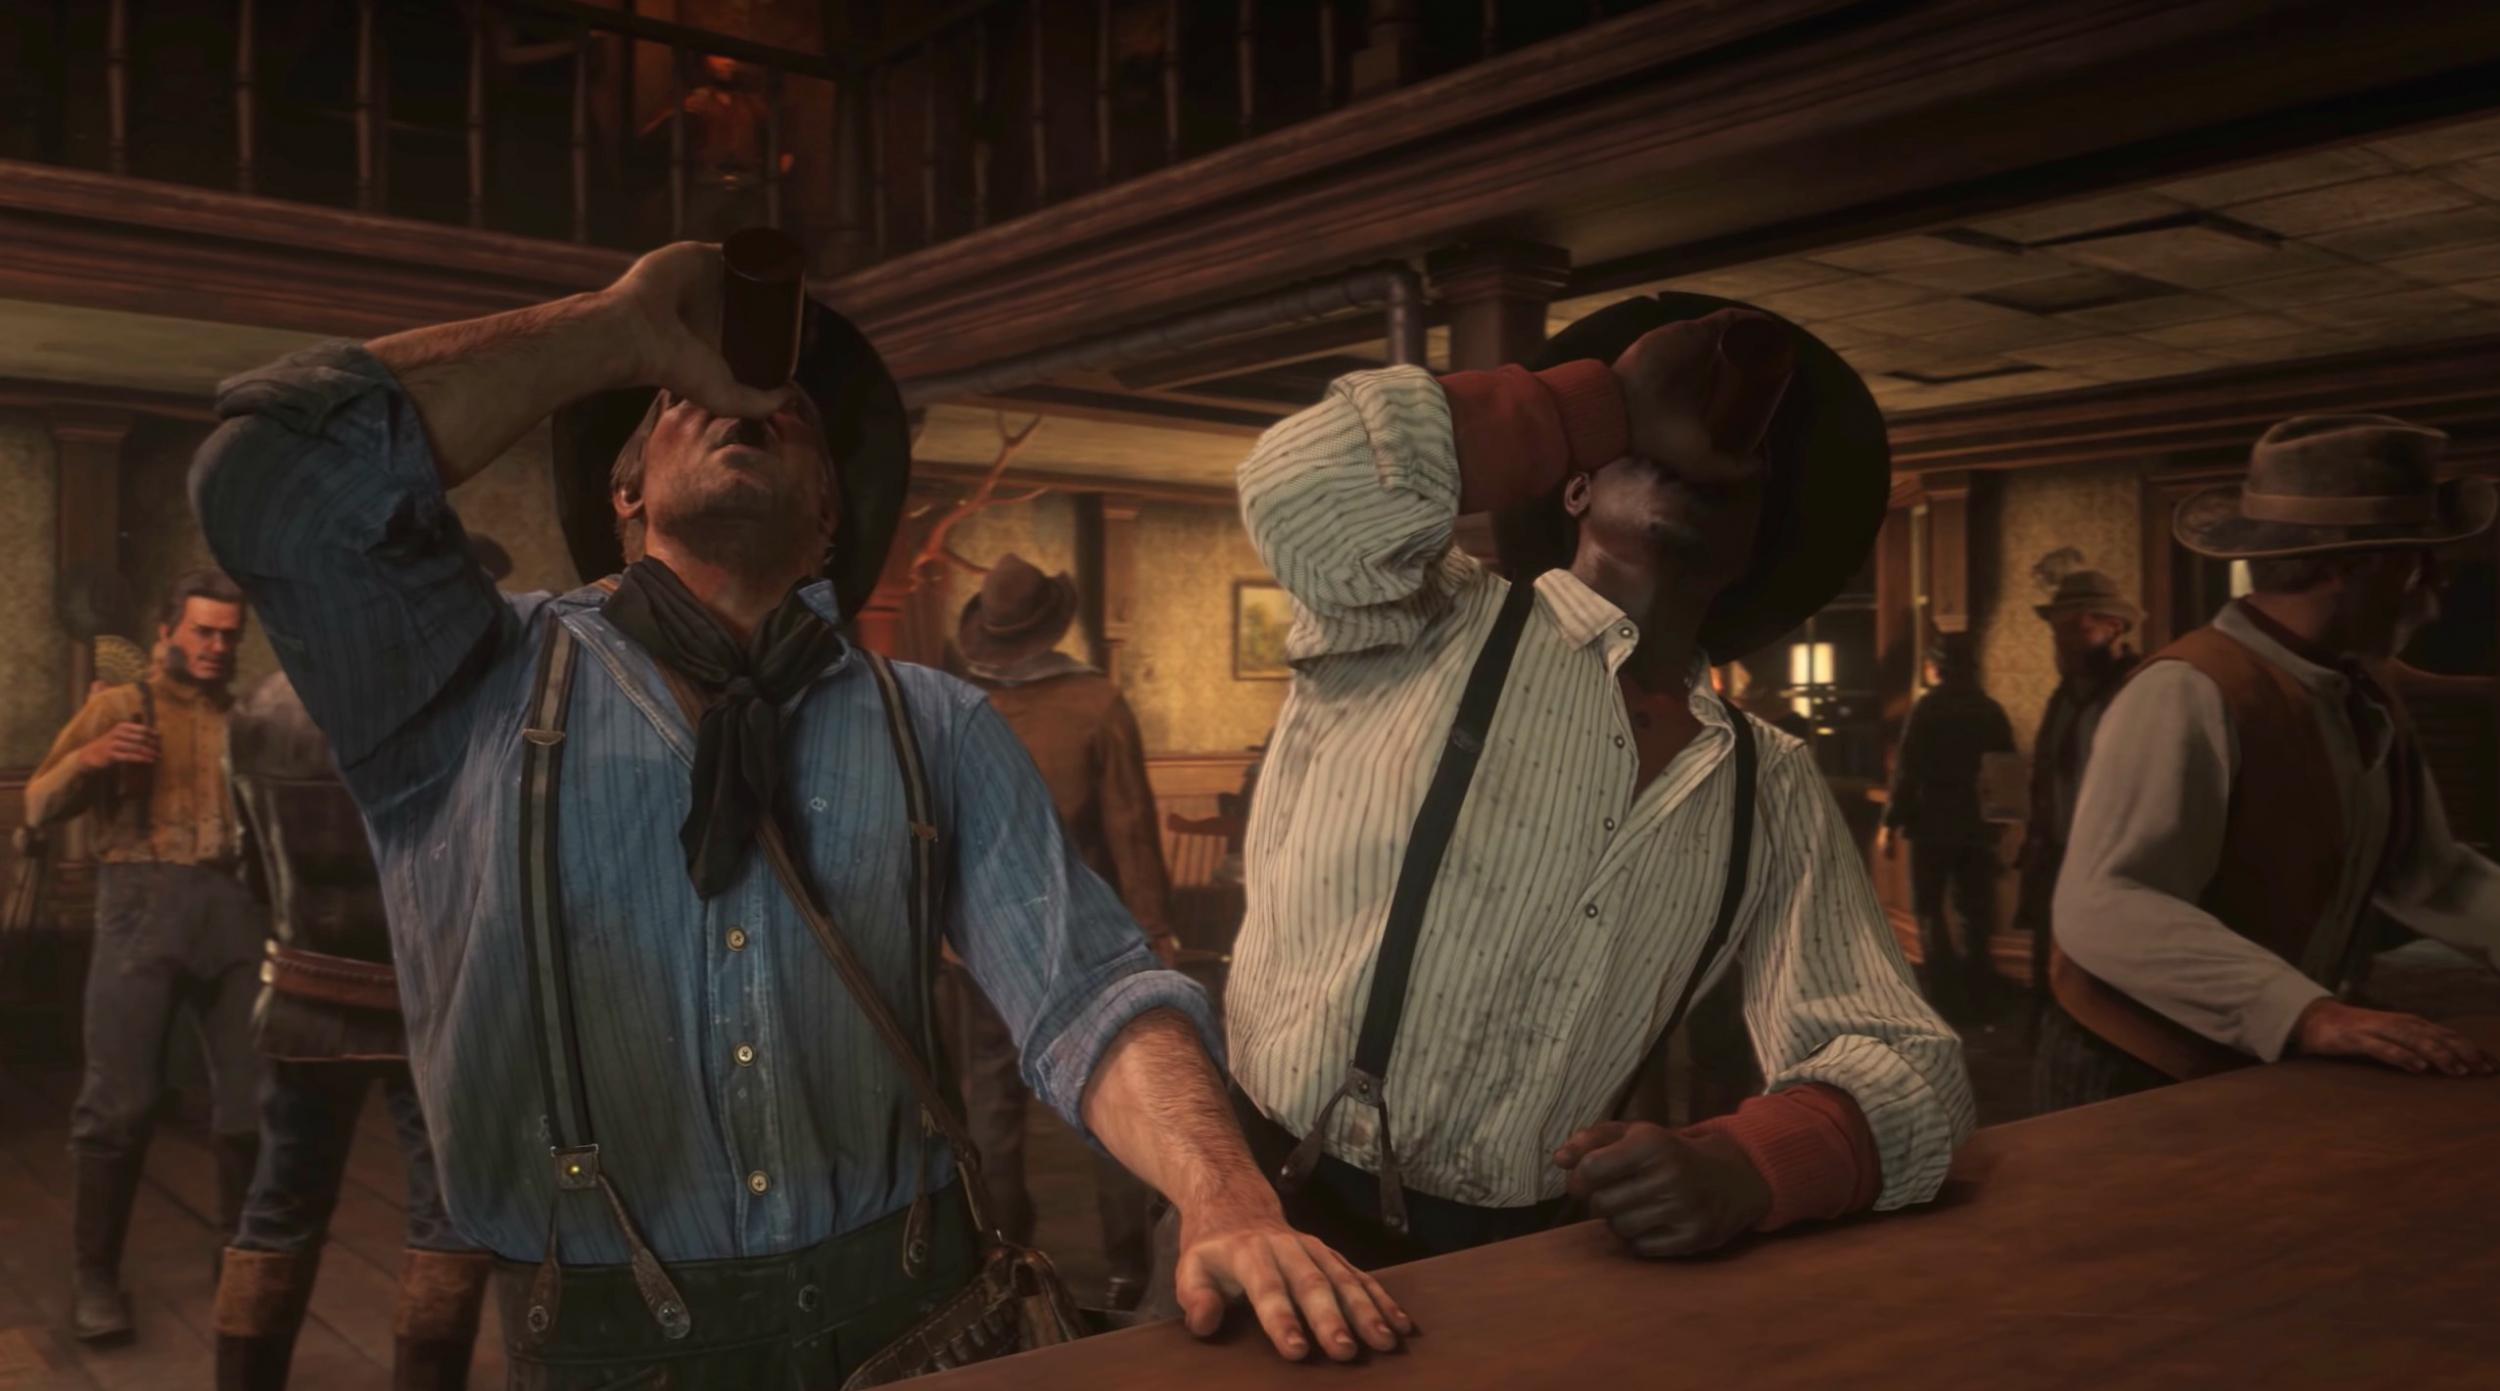 Red Dead Redemption 2, Black Ops 4, and Smash Ultimate are among 2018's biggest sellers screenshot